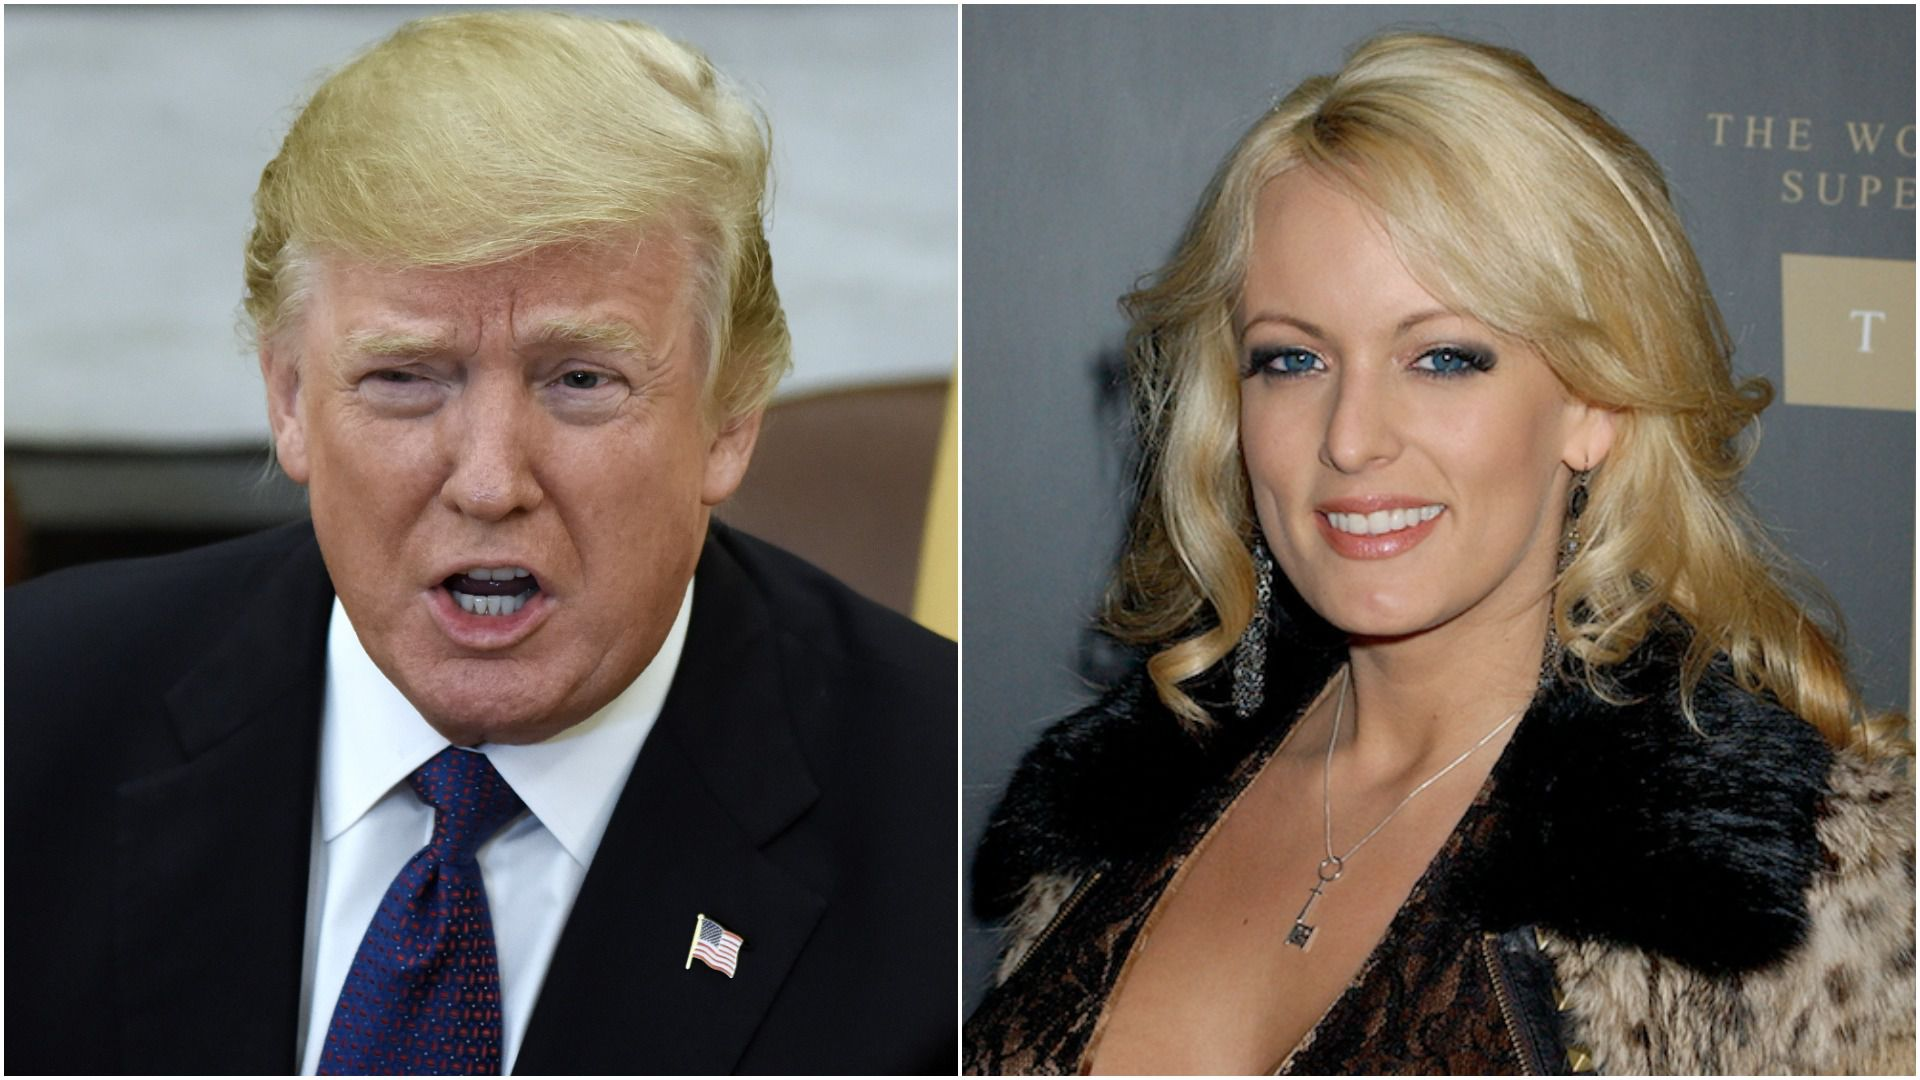 Report Fox News Declined To Publish Trump Porn Star Story Before Election